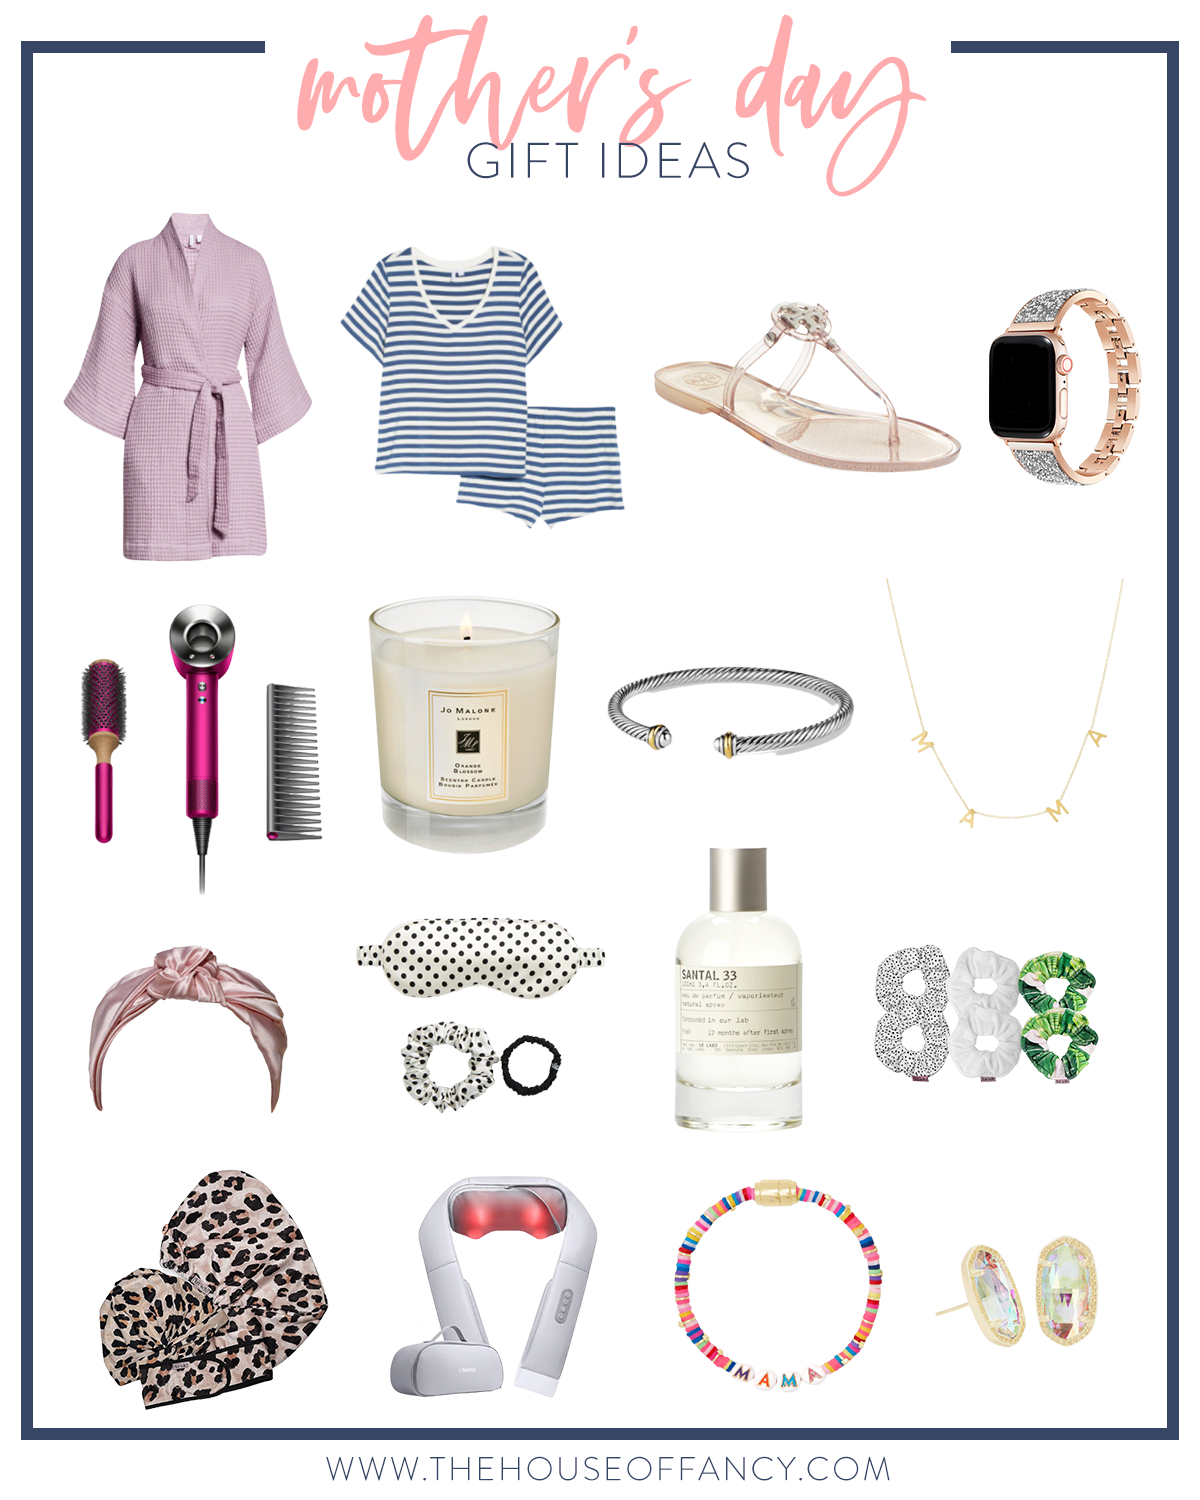 Mother's Day Gift Ideas by popular Houston life and style blog, The House of Fancy: collage image a rob, blue and white stripe pajama set, Tory Burch sandals, apple watch, knot headband, neck massager, sleepi mask, bracelet, candle, dyson hair dryer, post earrings, and mama necklace.